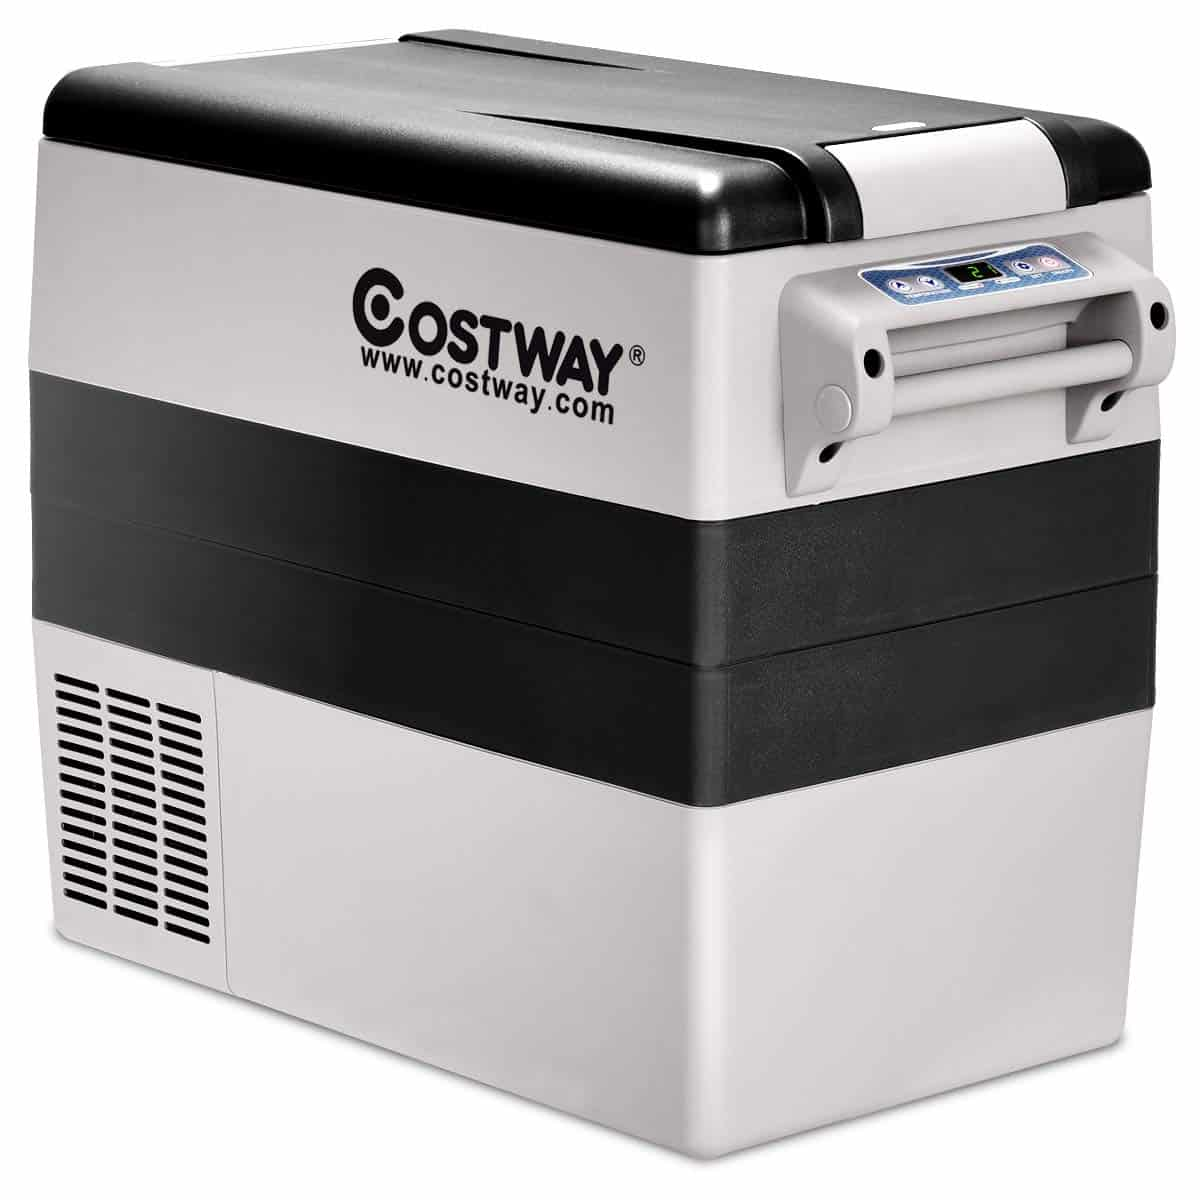 Costway Electric Camping Cooler